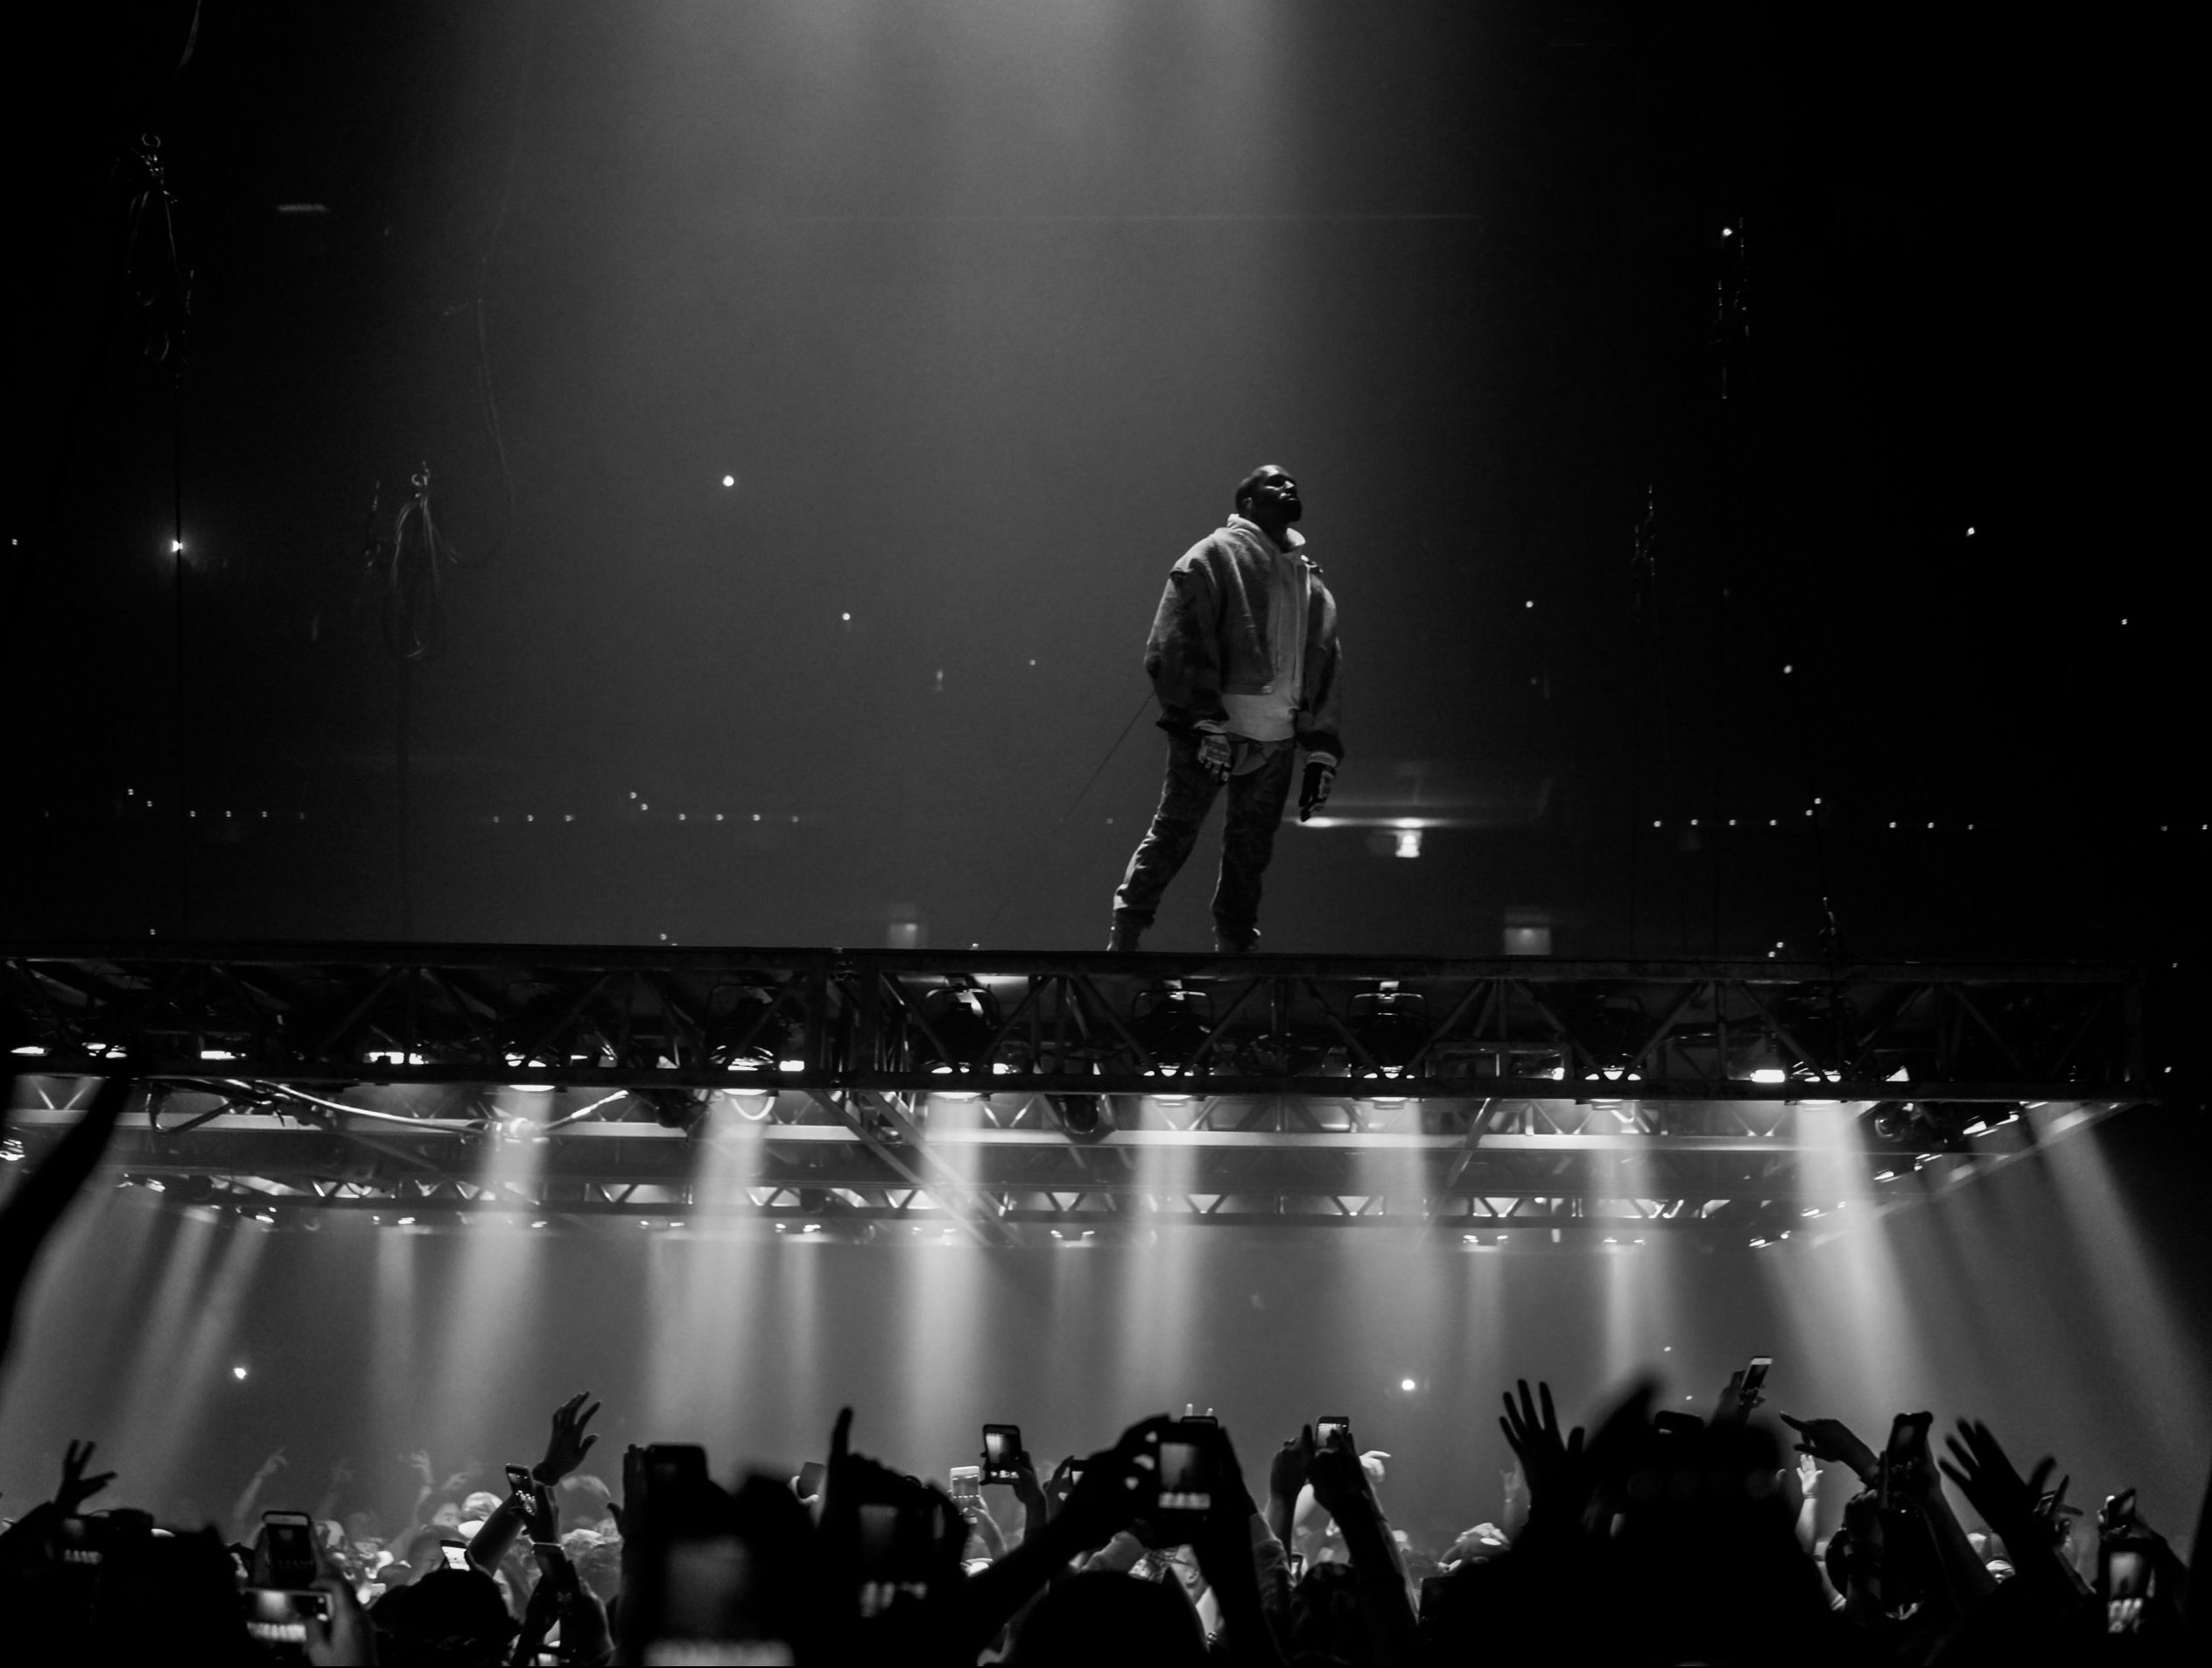 Kanye West performs on the hovering platform at his concert in Boston  on Sept. 9, 2016. (Photo by Kenny Sun / Flickr)